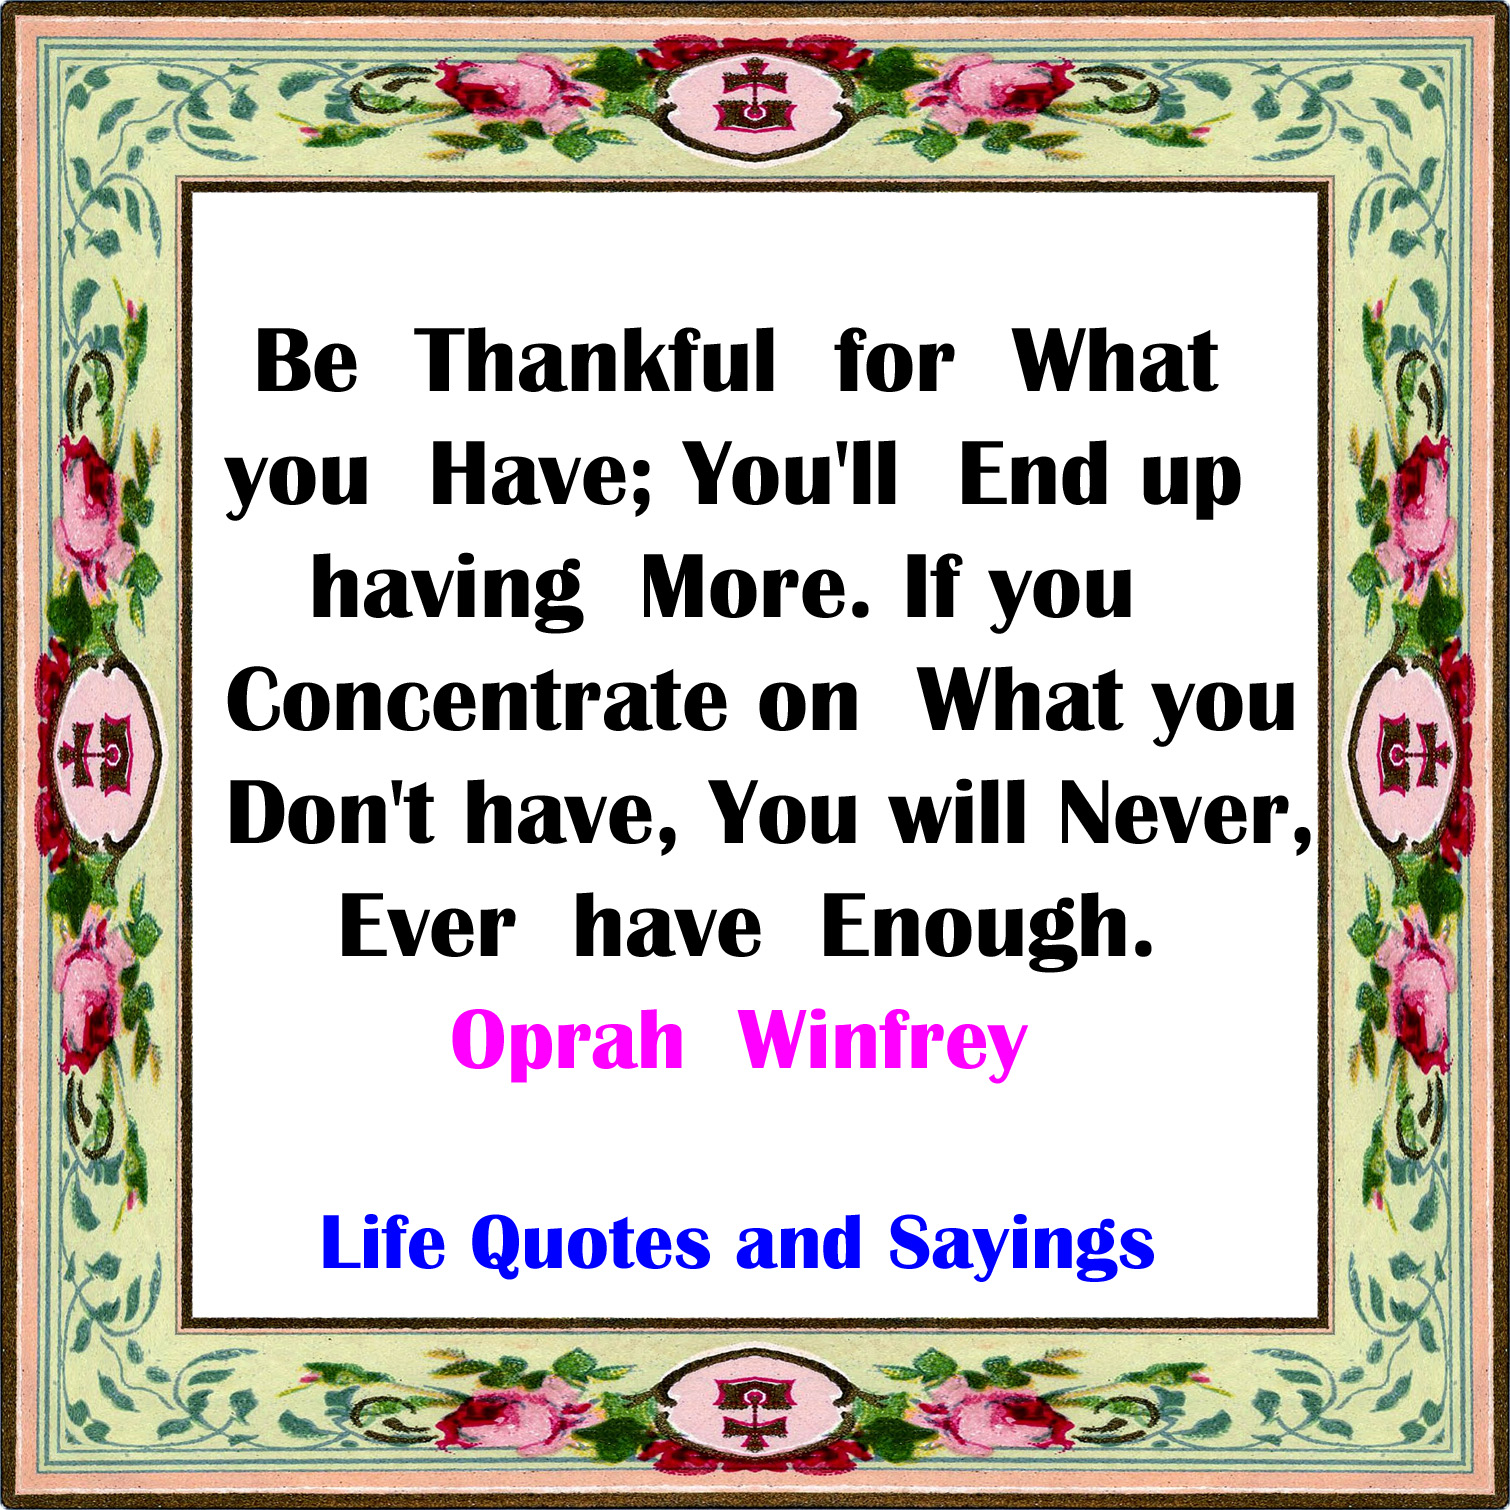 Life Quotes And Sayings Thankful For What You Have And You Will